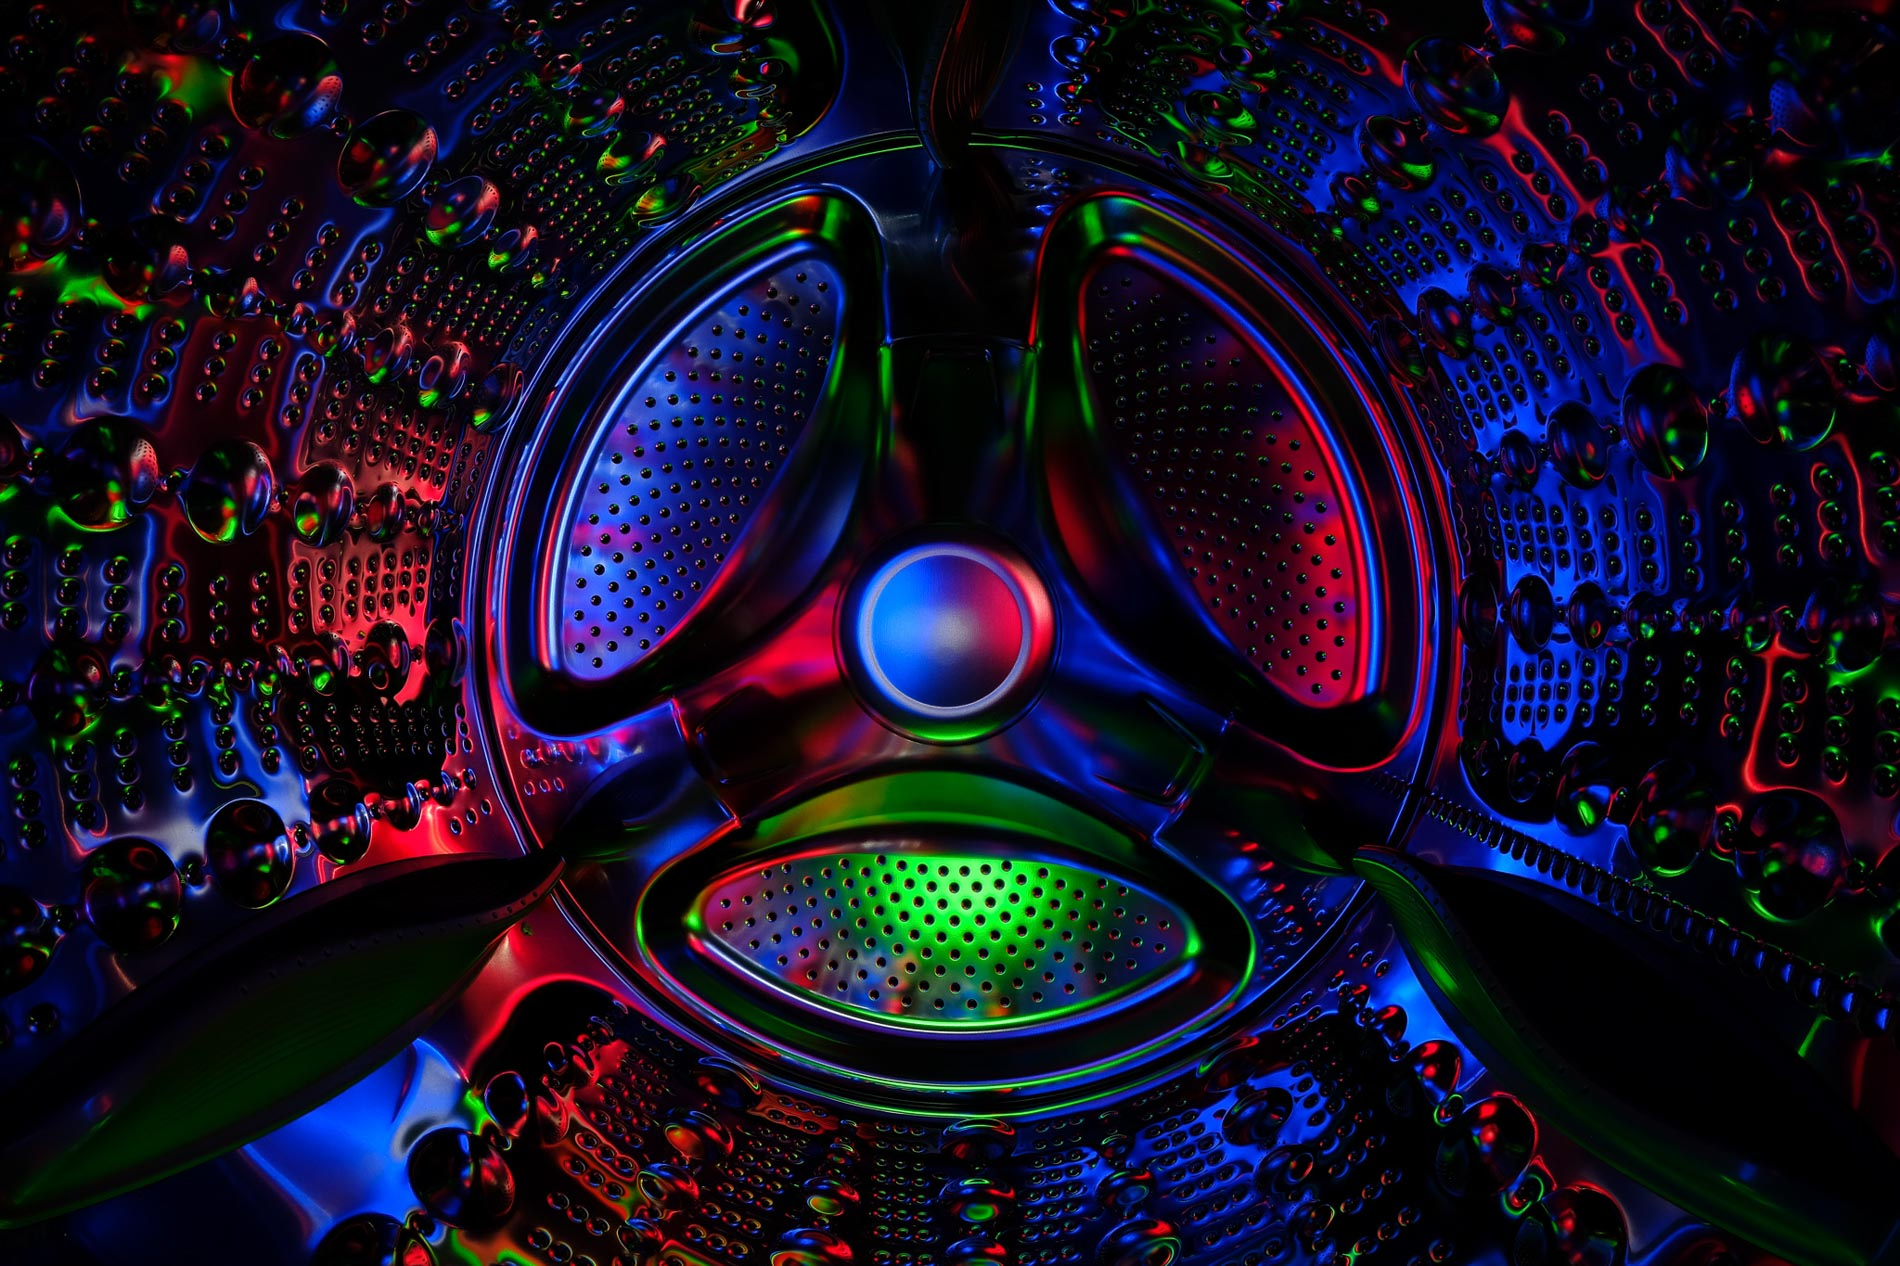 abstract inside of a clothes dryer lit by blue, red and green lights